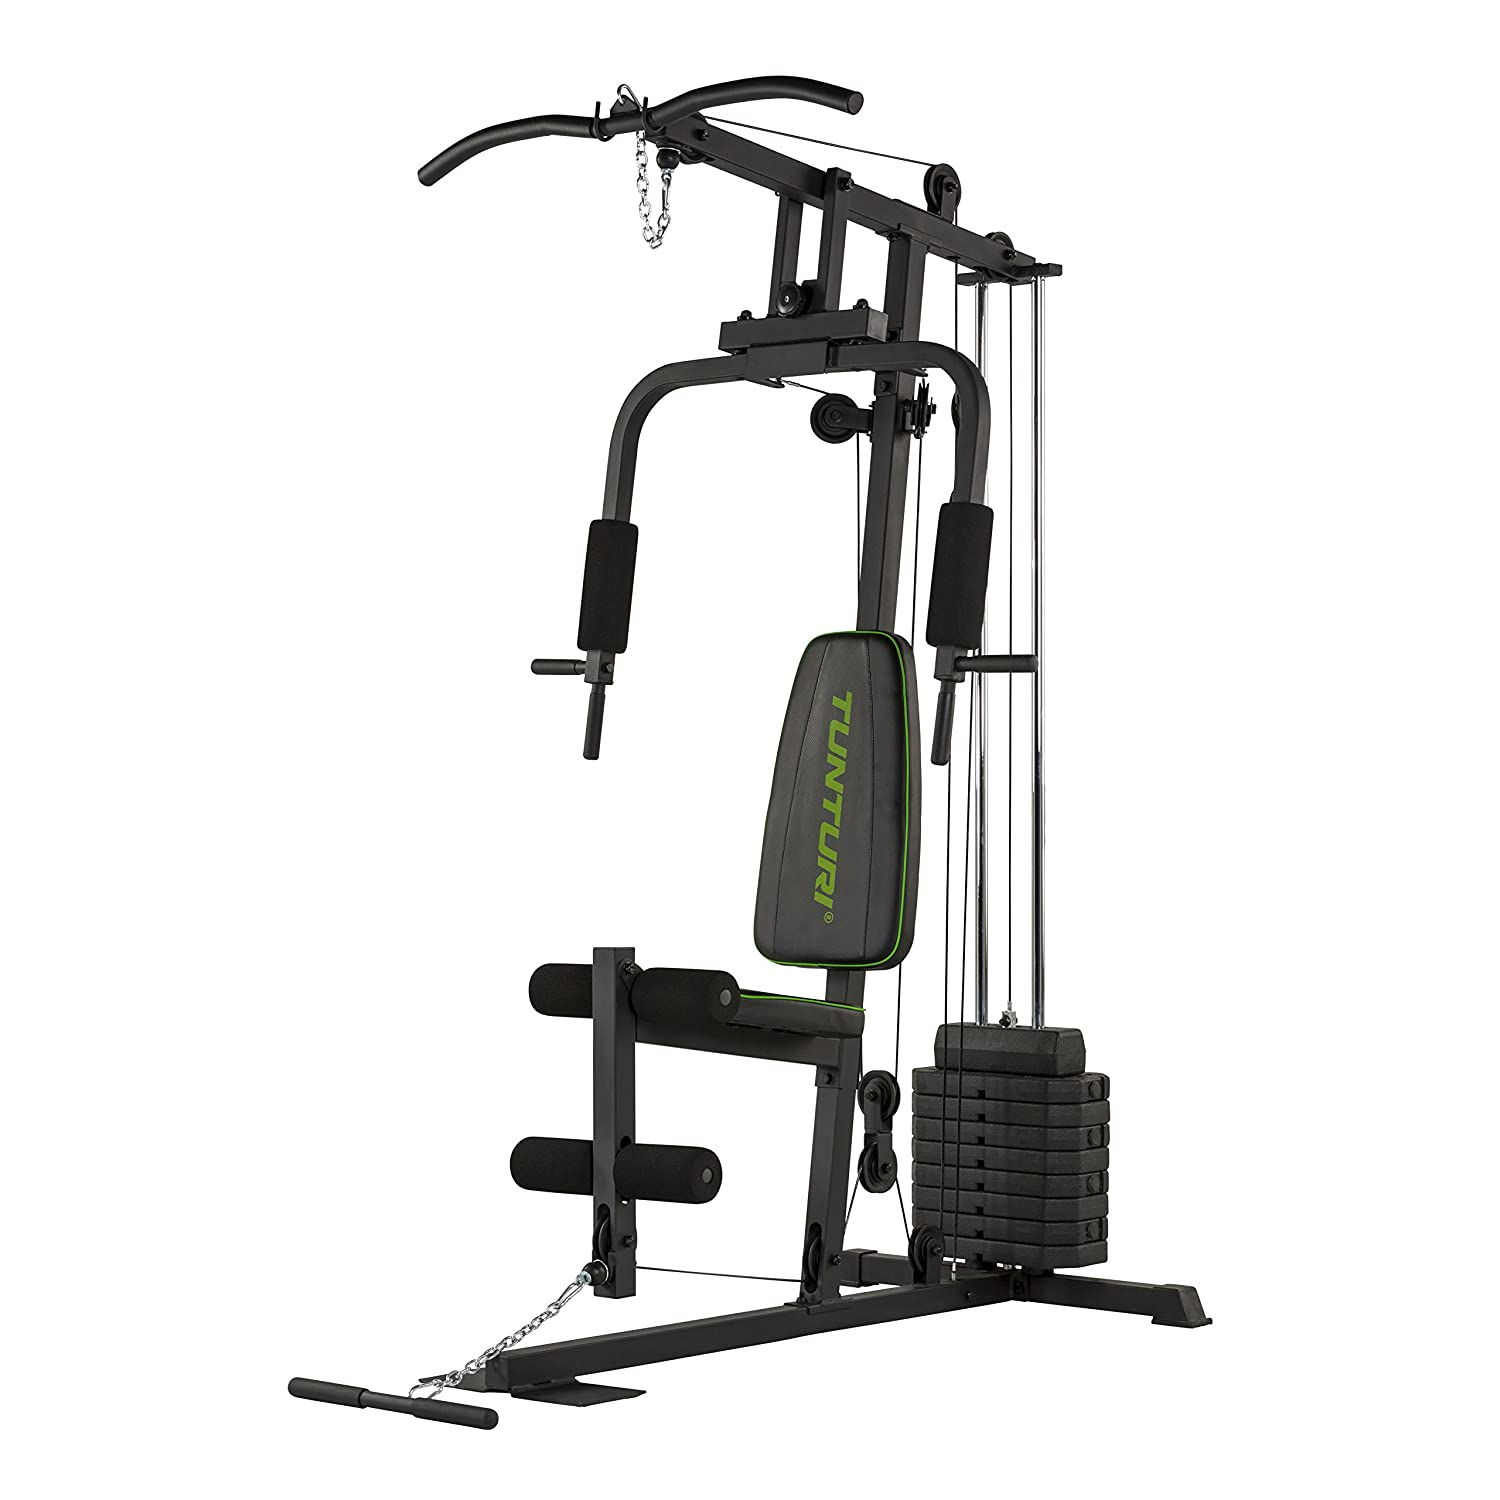 Tunturi HG10 Home Gym Kraftstation, schwarz, 1